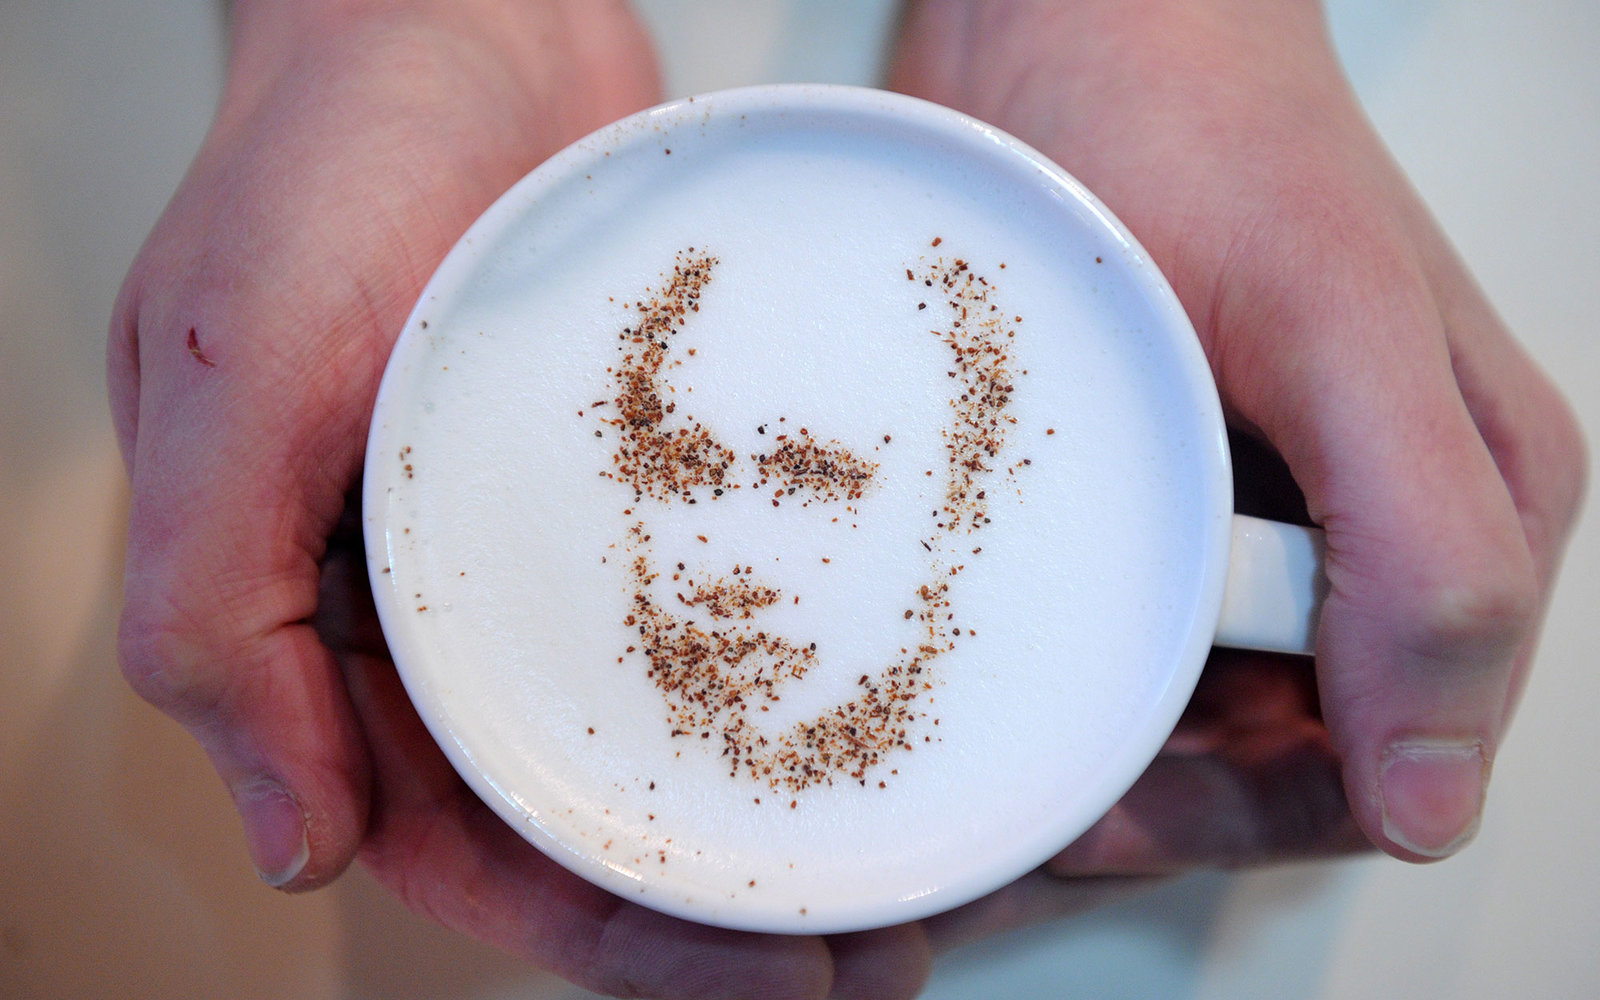 A coffeehouse client holds a cup of cappuccino with the portrait of Vladimir Putin created with cinnamon and cocoa powder sprinkled on the cappuccino's foam in Moscow, on February 1, 2012. The strongman prime minister is seeking to win back his old Kremli